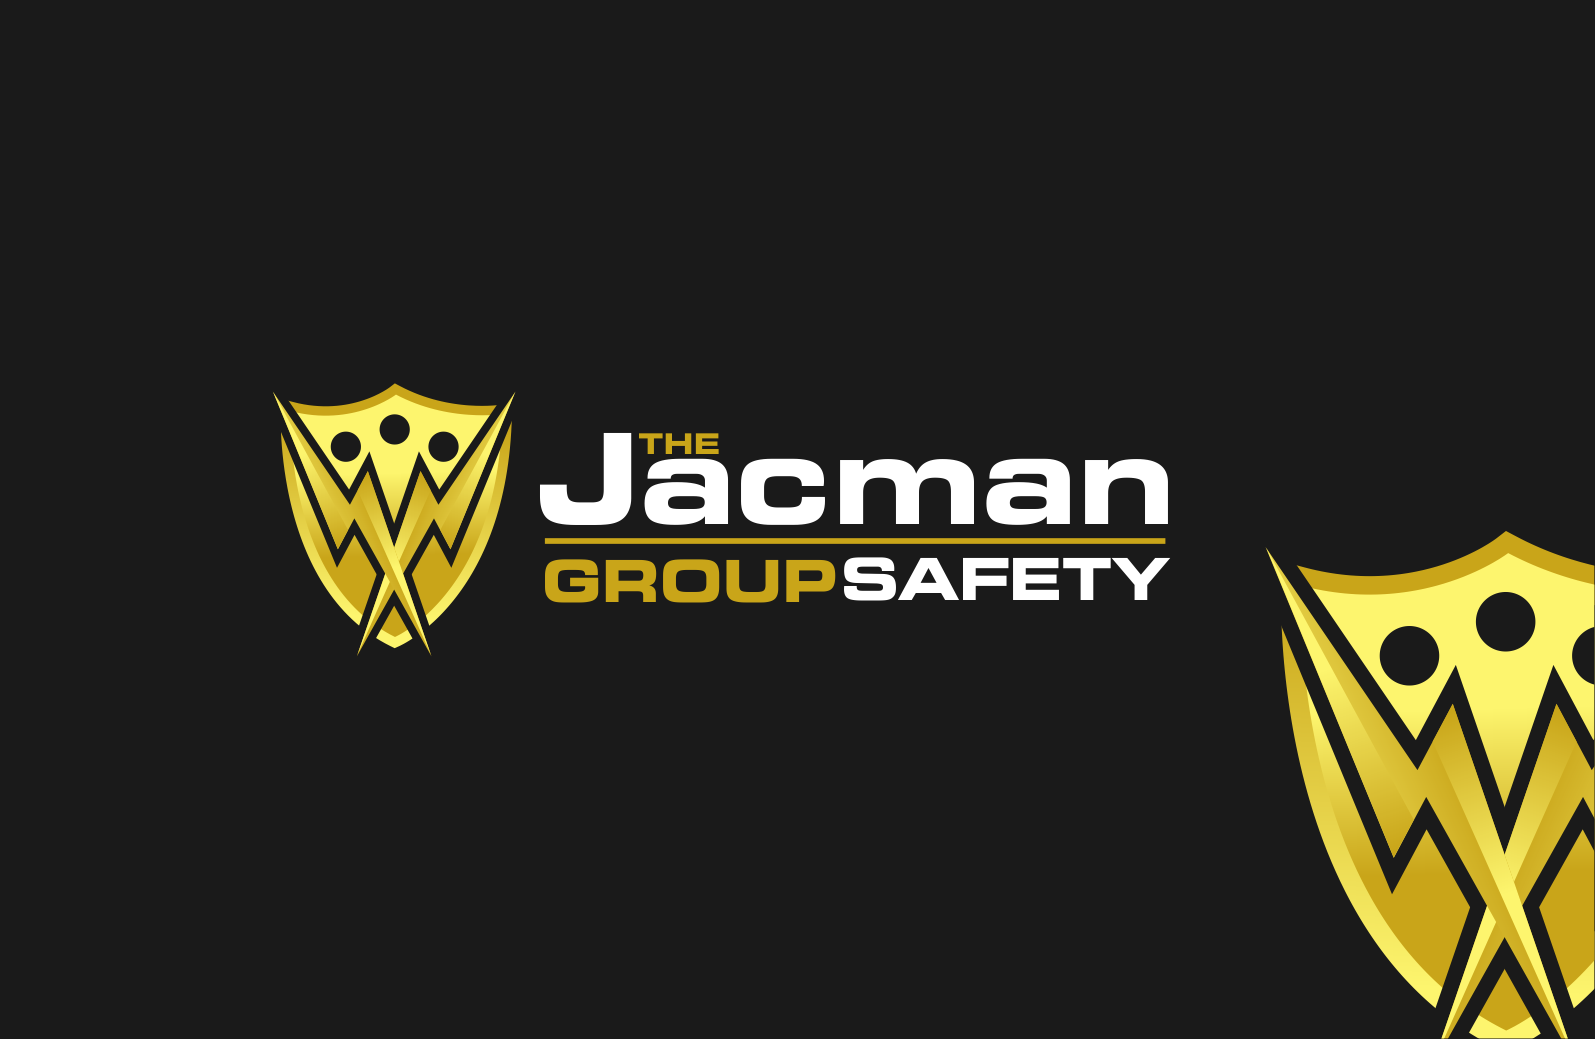 Logo Design by edwin123 - Entry No. 42 in the Logo Design Contest The Jacman Group Logo Design.